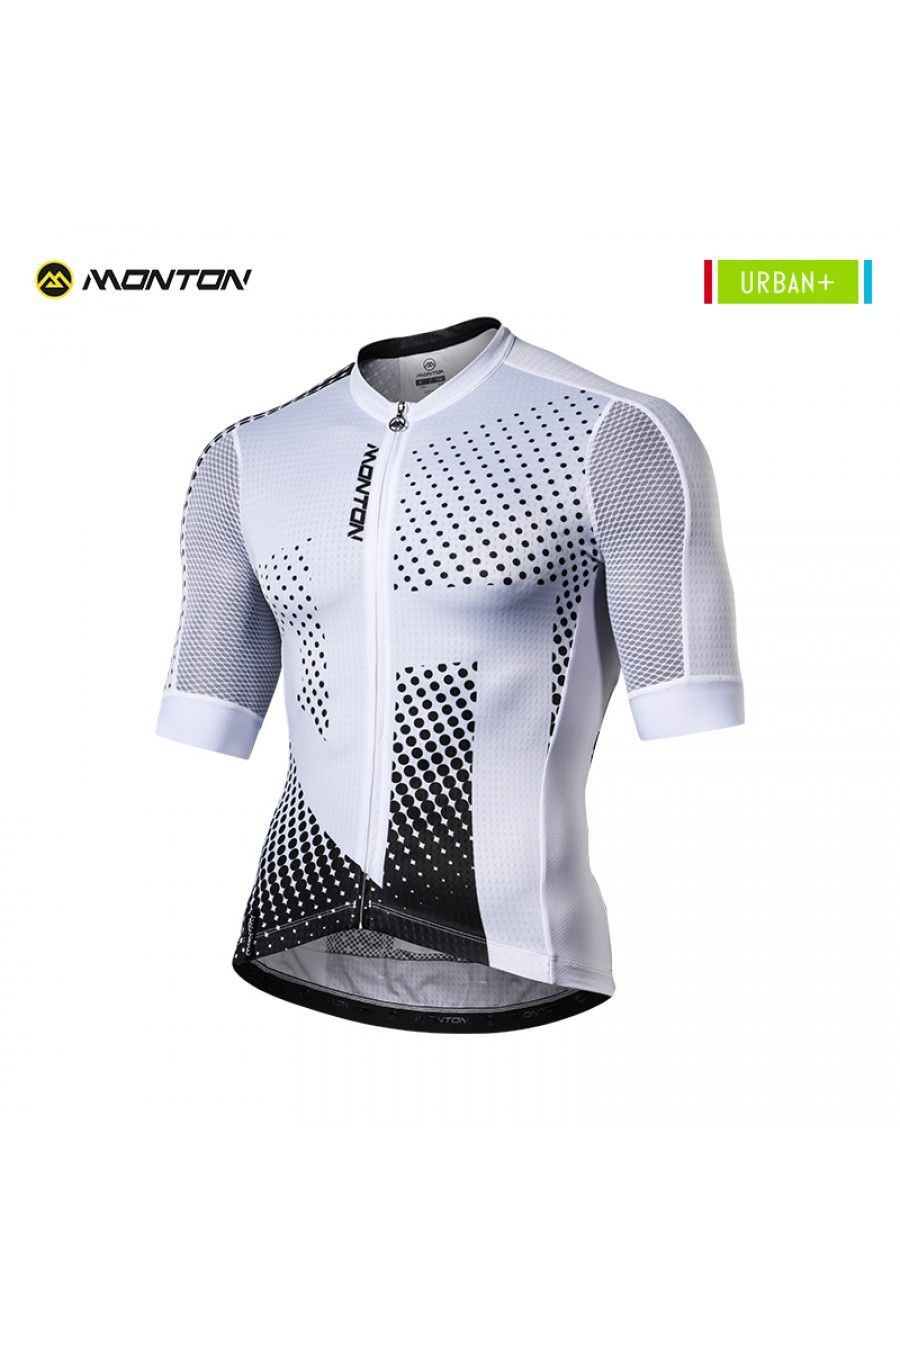 40822245145 black and white cycling jersey | Cycling Kits | Cycling outfit ...